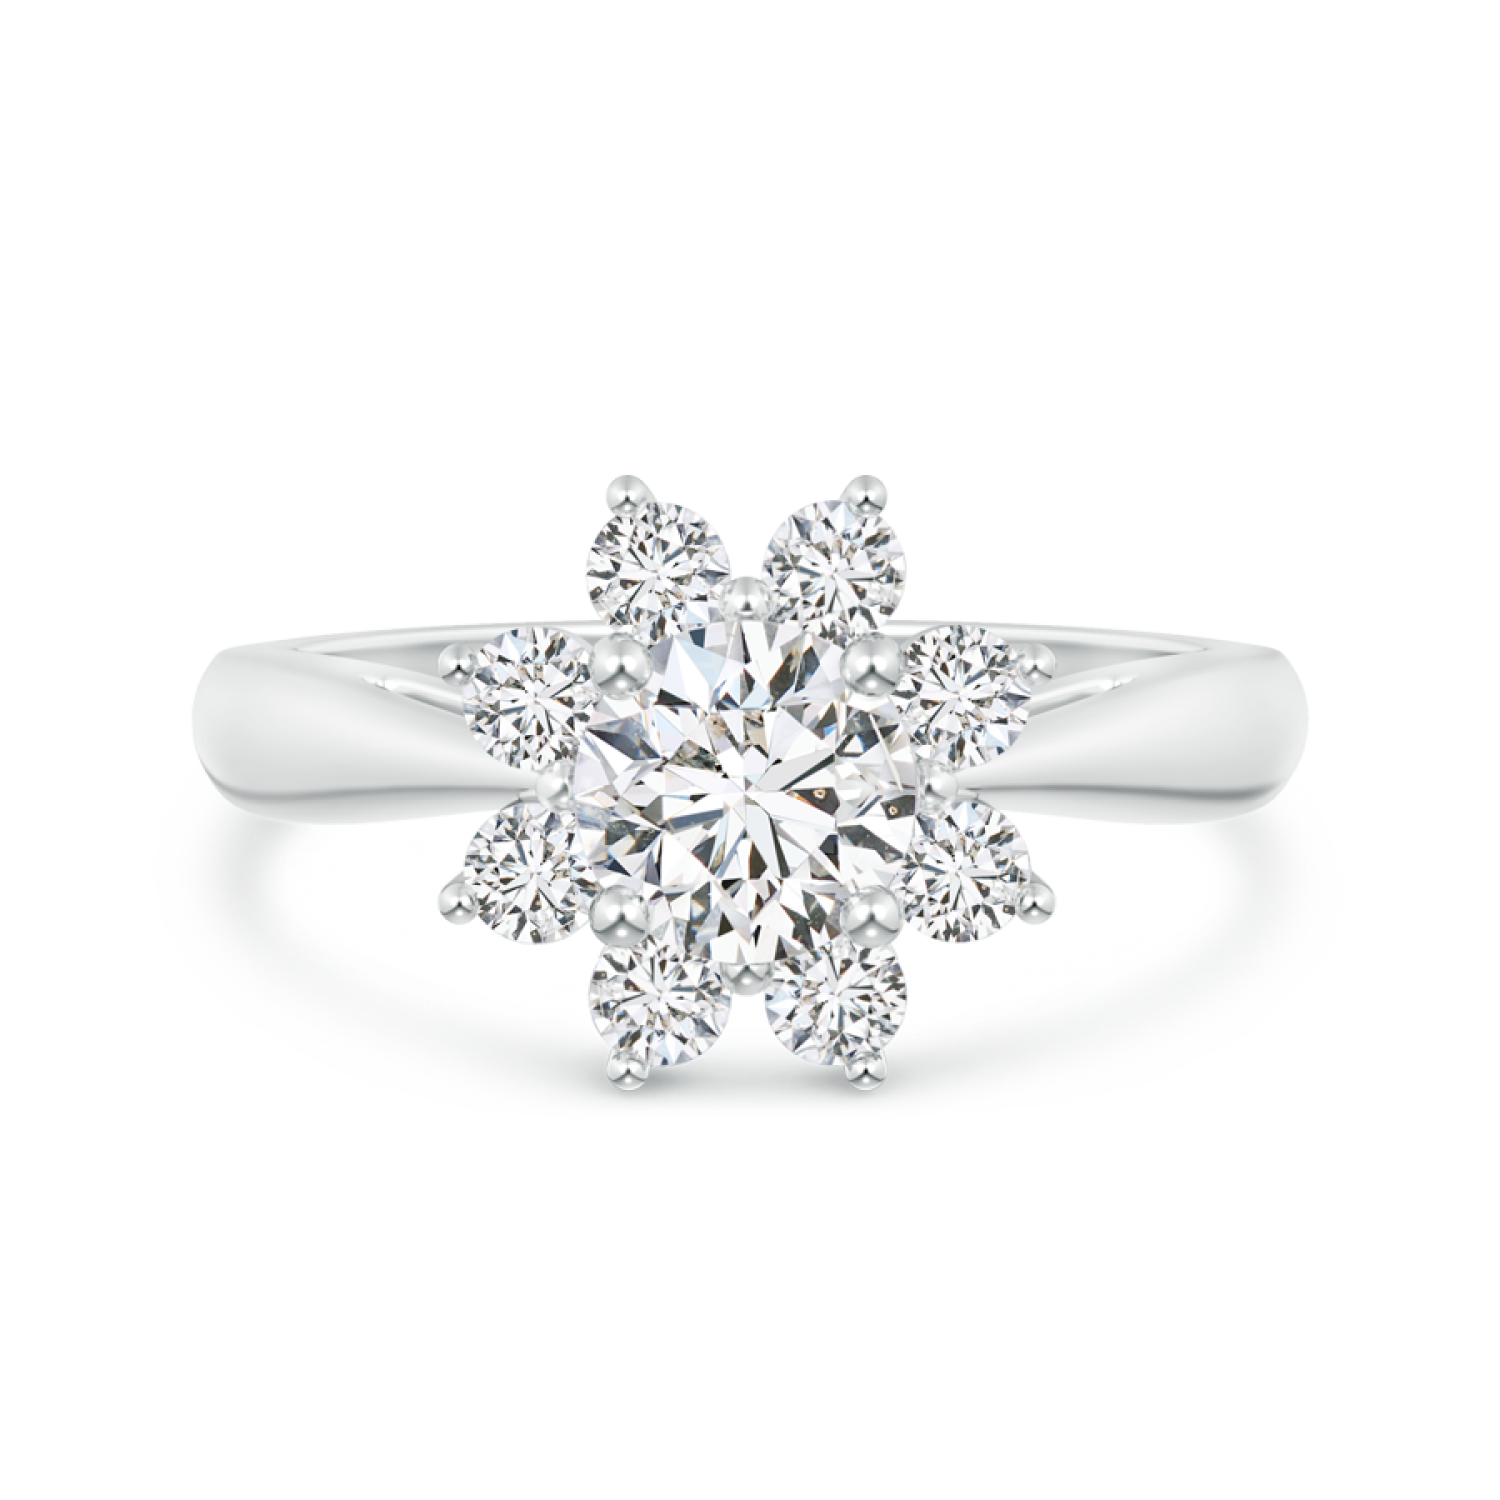 Round Lab Grown Diamond Floral Halo Ring with Tapered Shank - Main Image